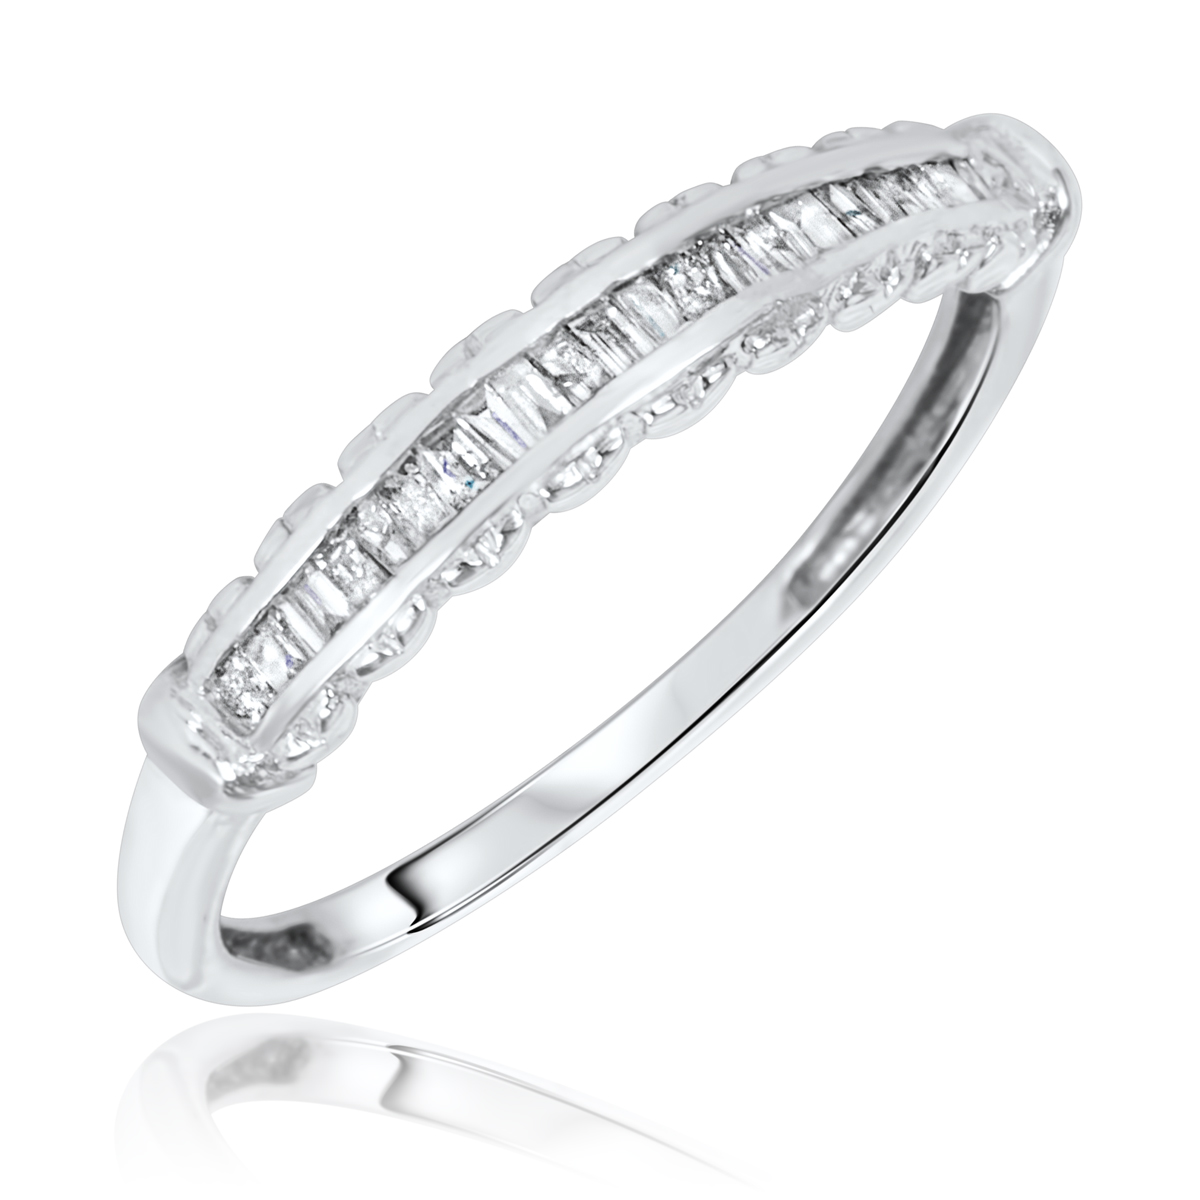 Women39;s Wedding Ring 14K White Gold  My Trio Rings  BT129W14KL